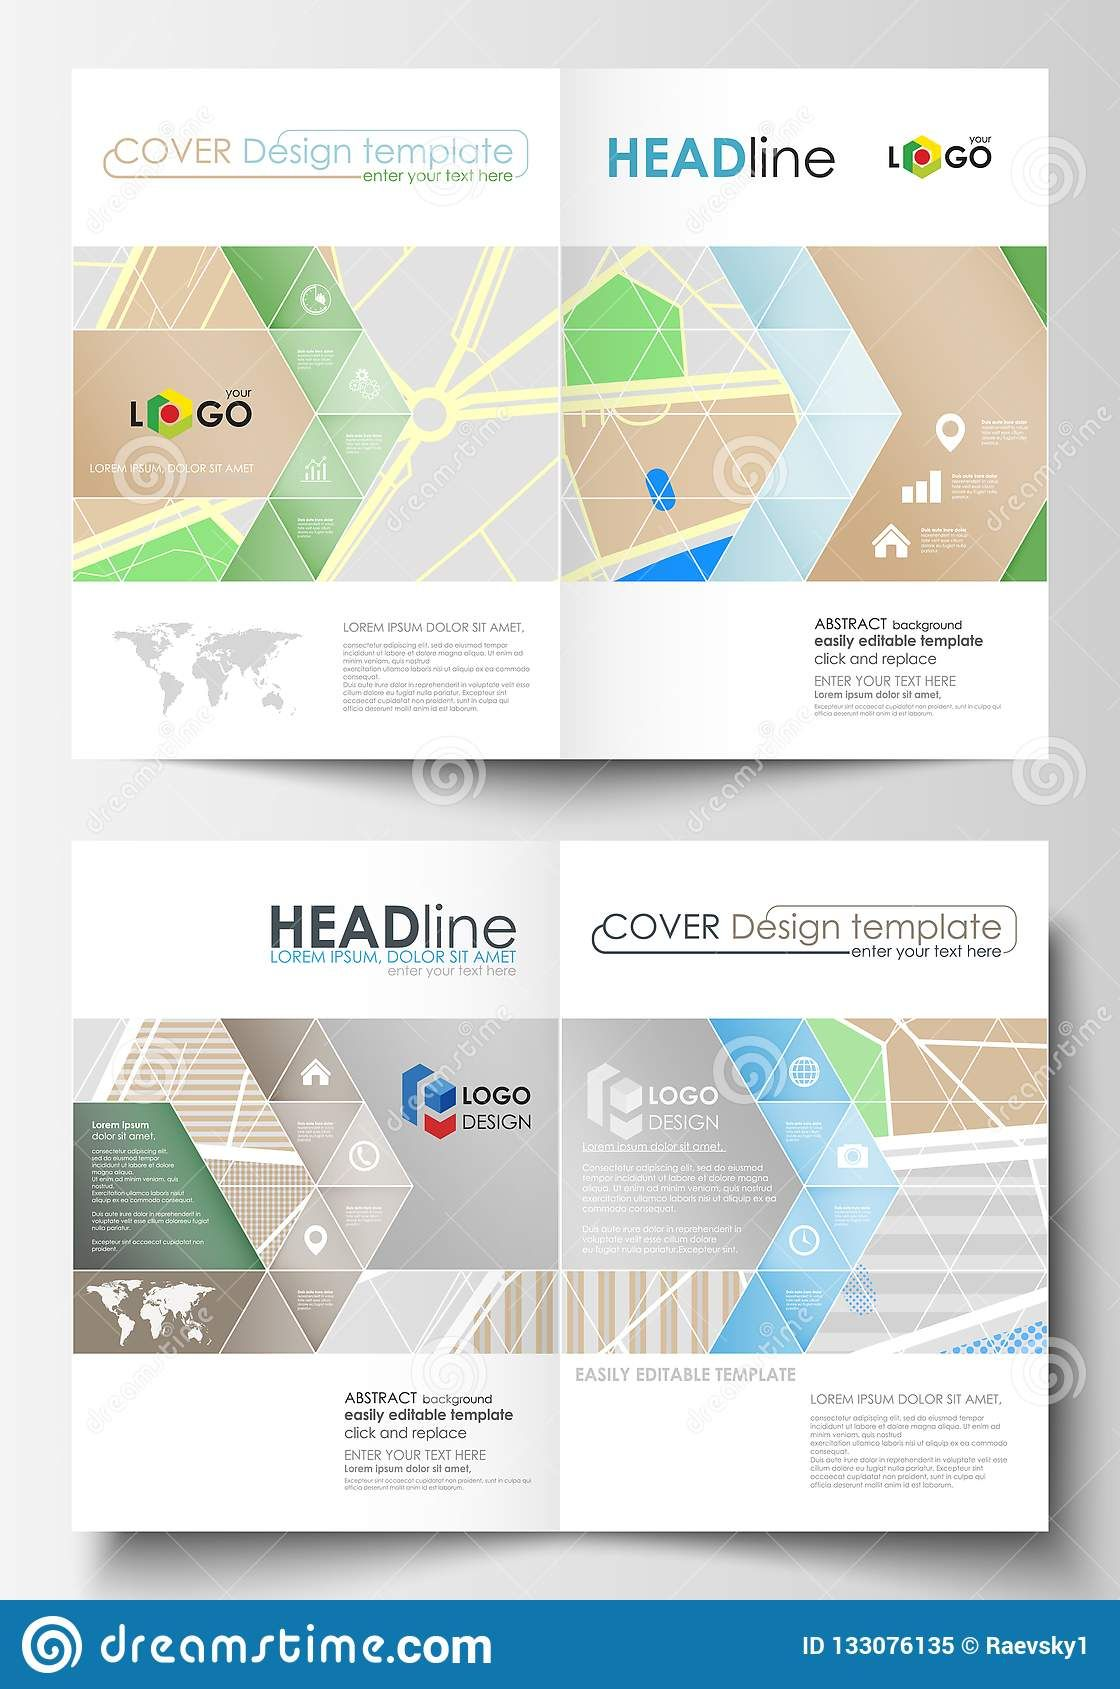 Business Templates For Bi Fold Brochure Magazine Flyer Or Inside Blank City Map Template Great Cretive Templates Bi Fold Brochure Business Template Flyer